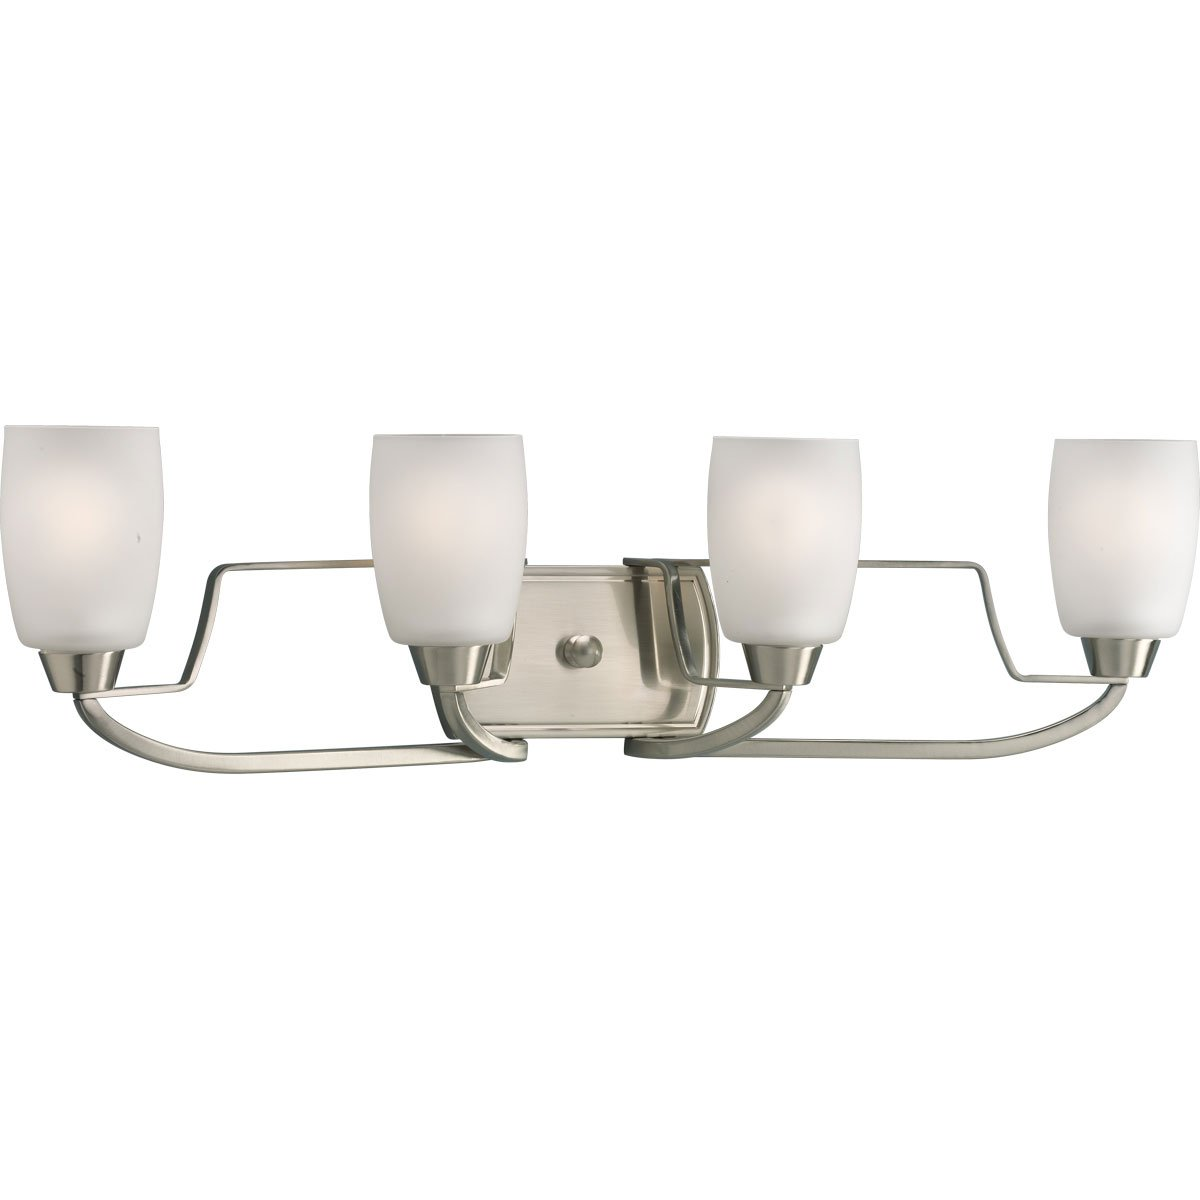 Progress Lighting P2797-09 4-Light Bath Bracket with White Opal Glass, Brushed Nickel